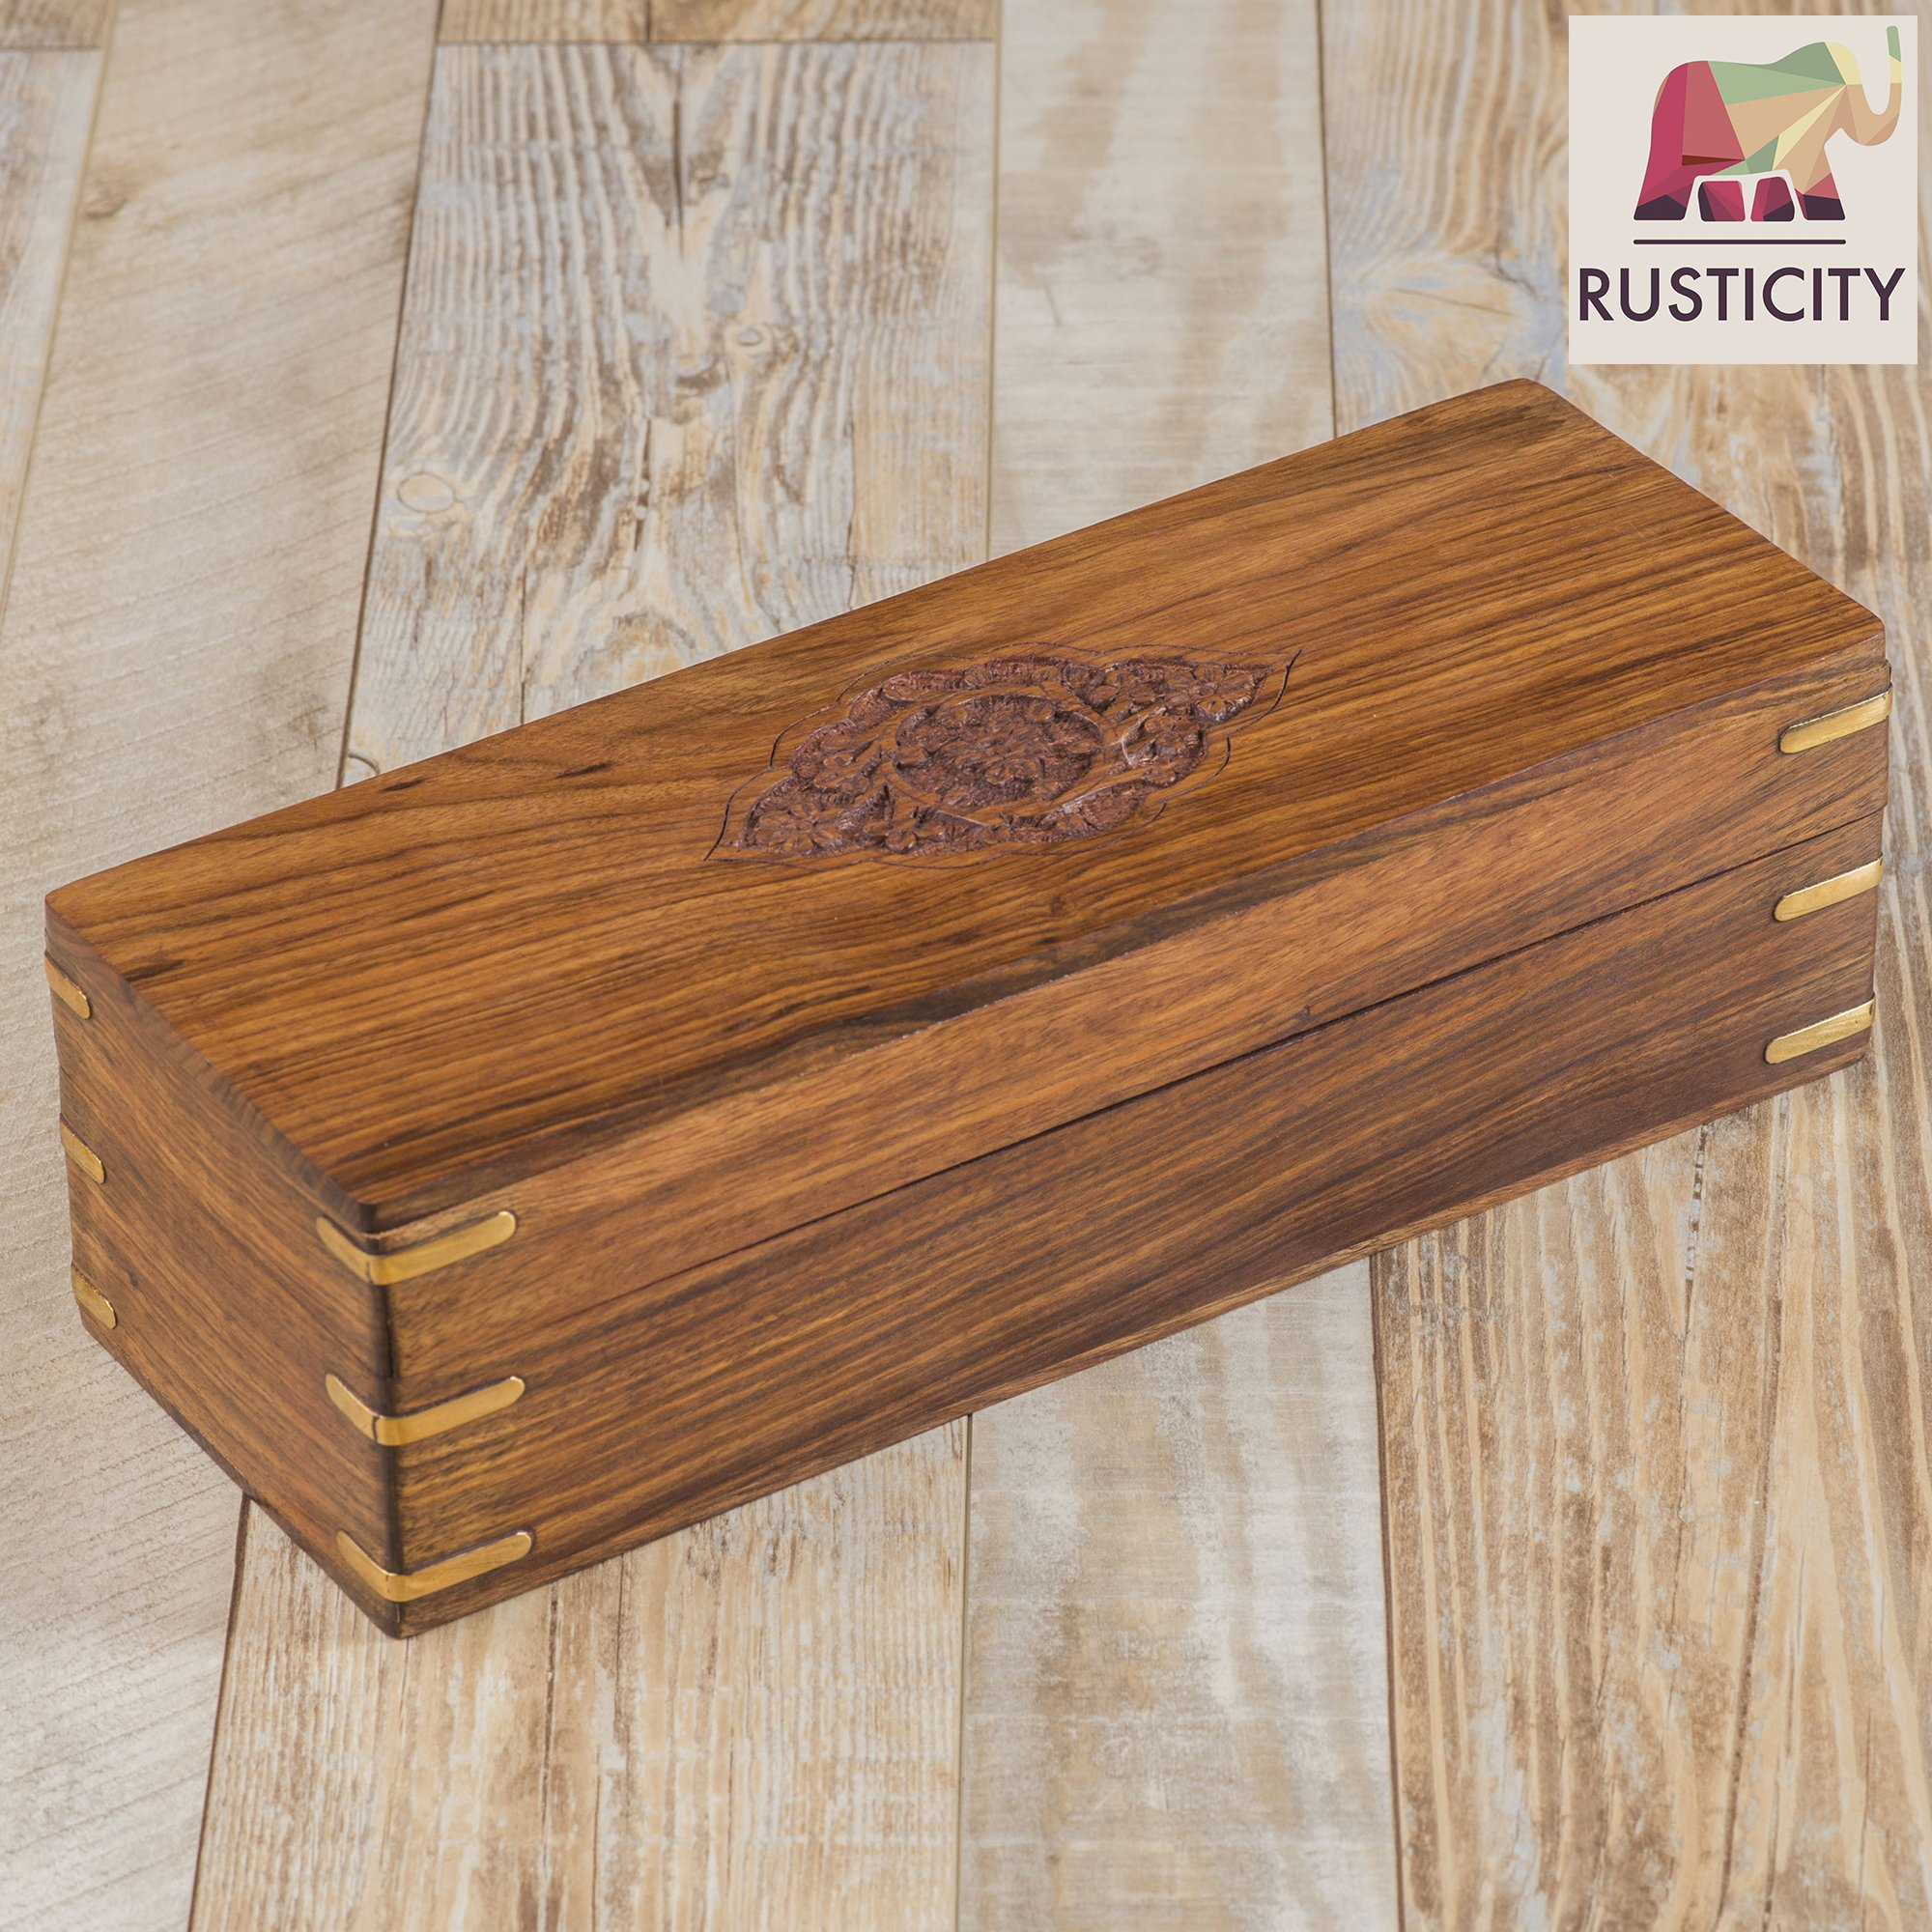 Rusticity Wooden Tea Box/Spice Organizer with Lid - 8 Slots | Handmade | (12x4.5 in) by Rusticity (Image #4)